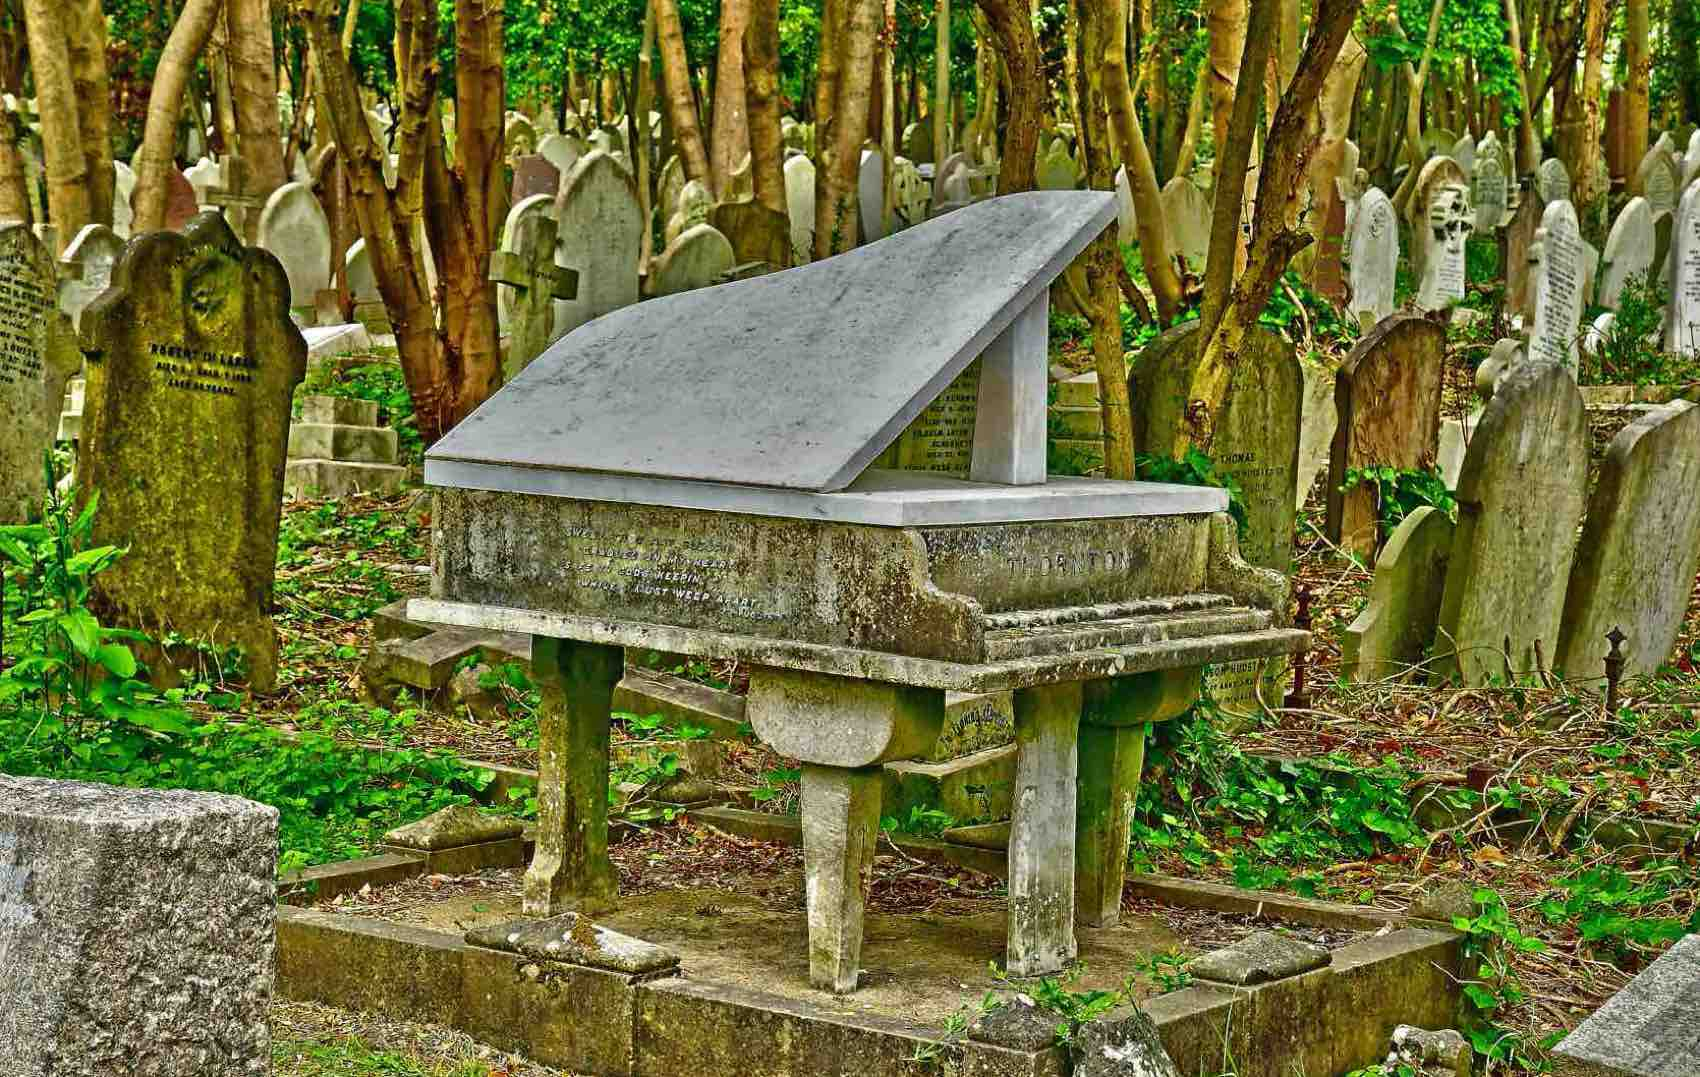 Last tango: He must have been a musician. This one at Highgate Cemetery